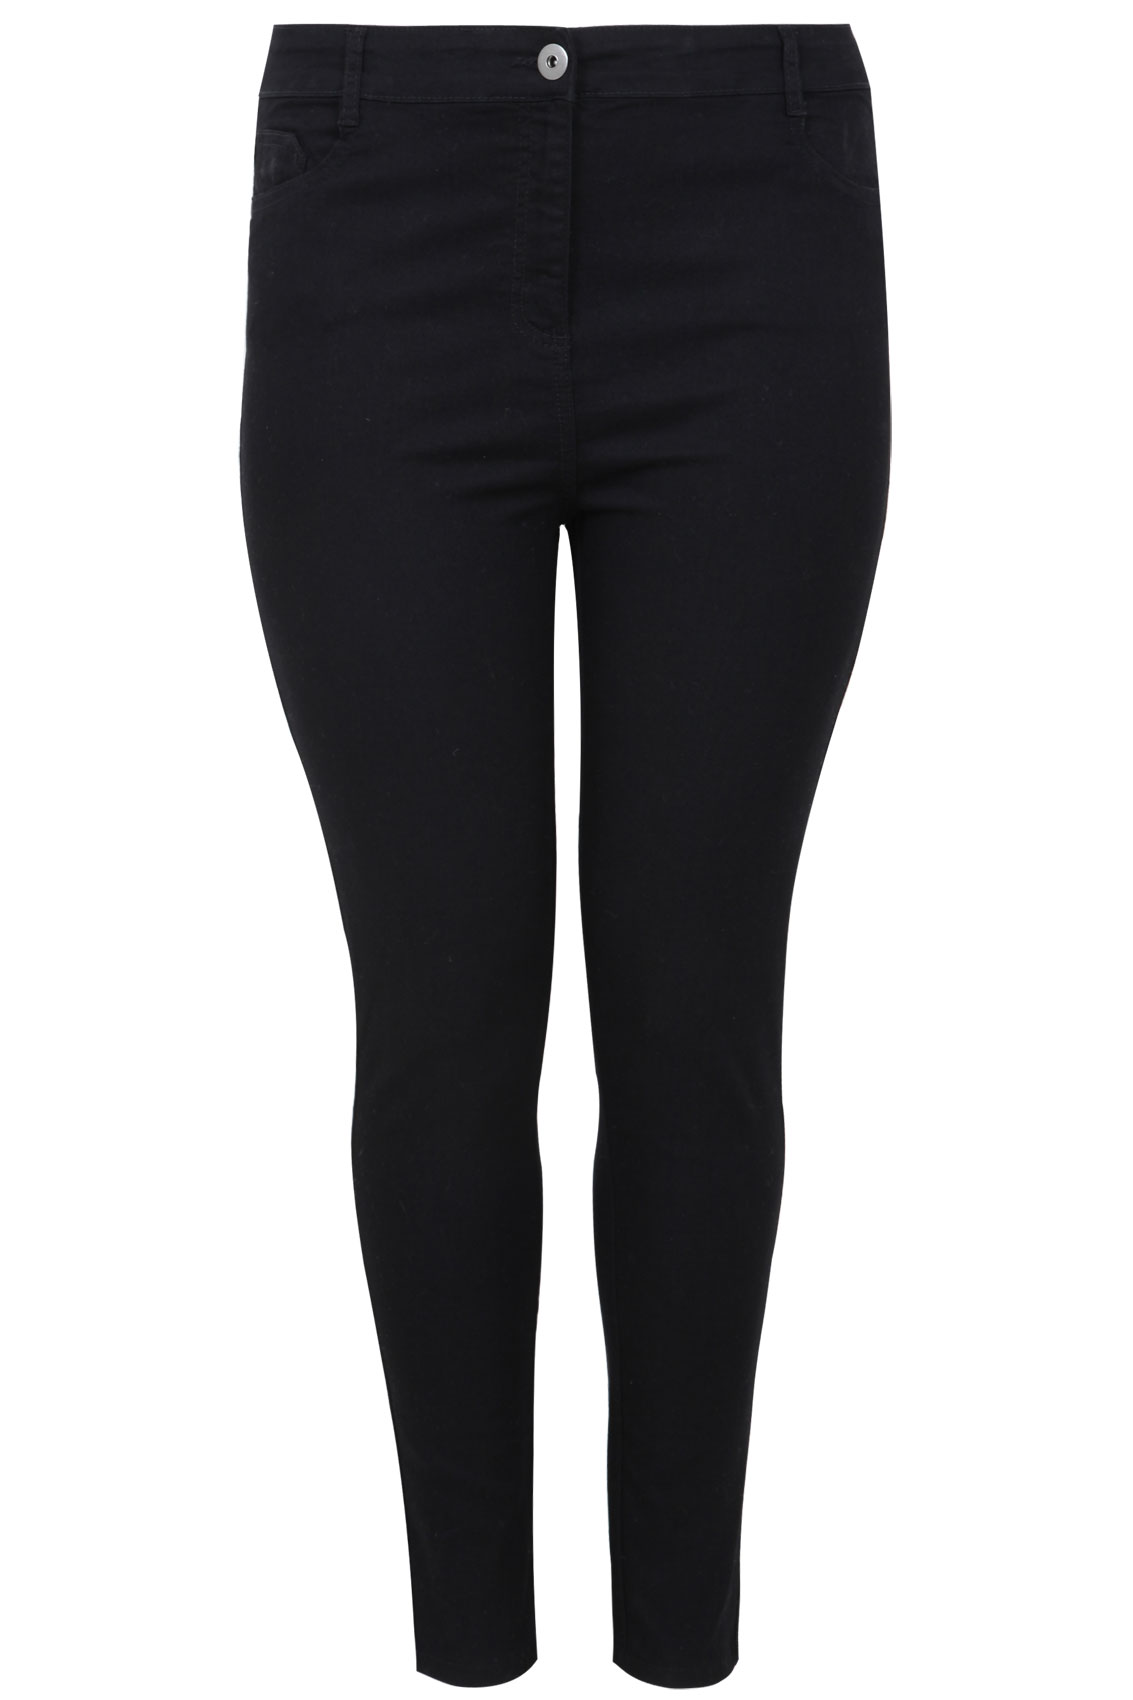 Black Super Stretch Skinny Jeans plus Size 14 to 28